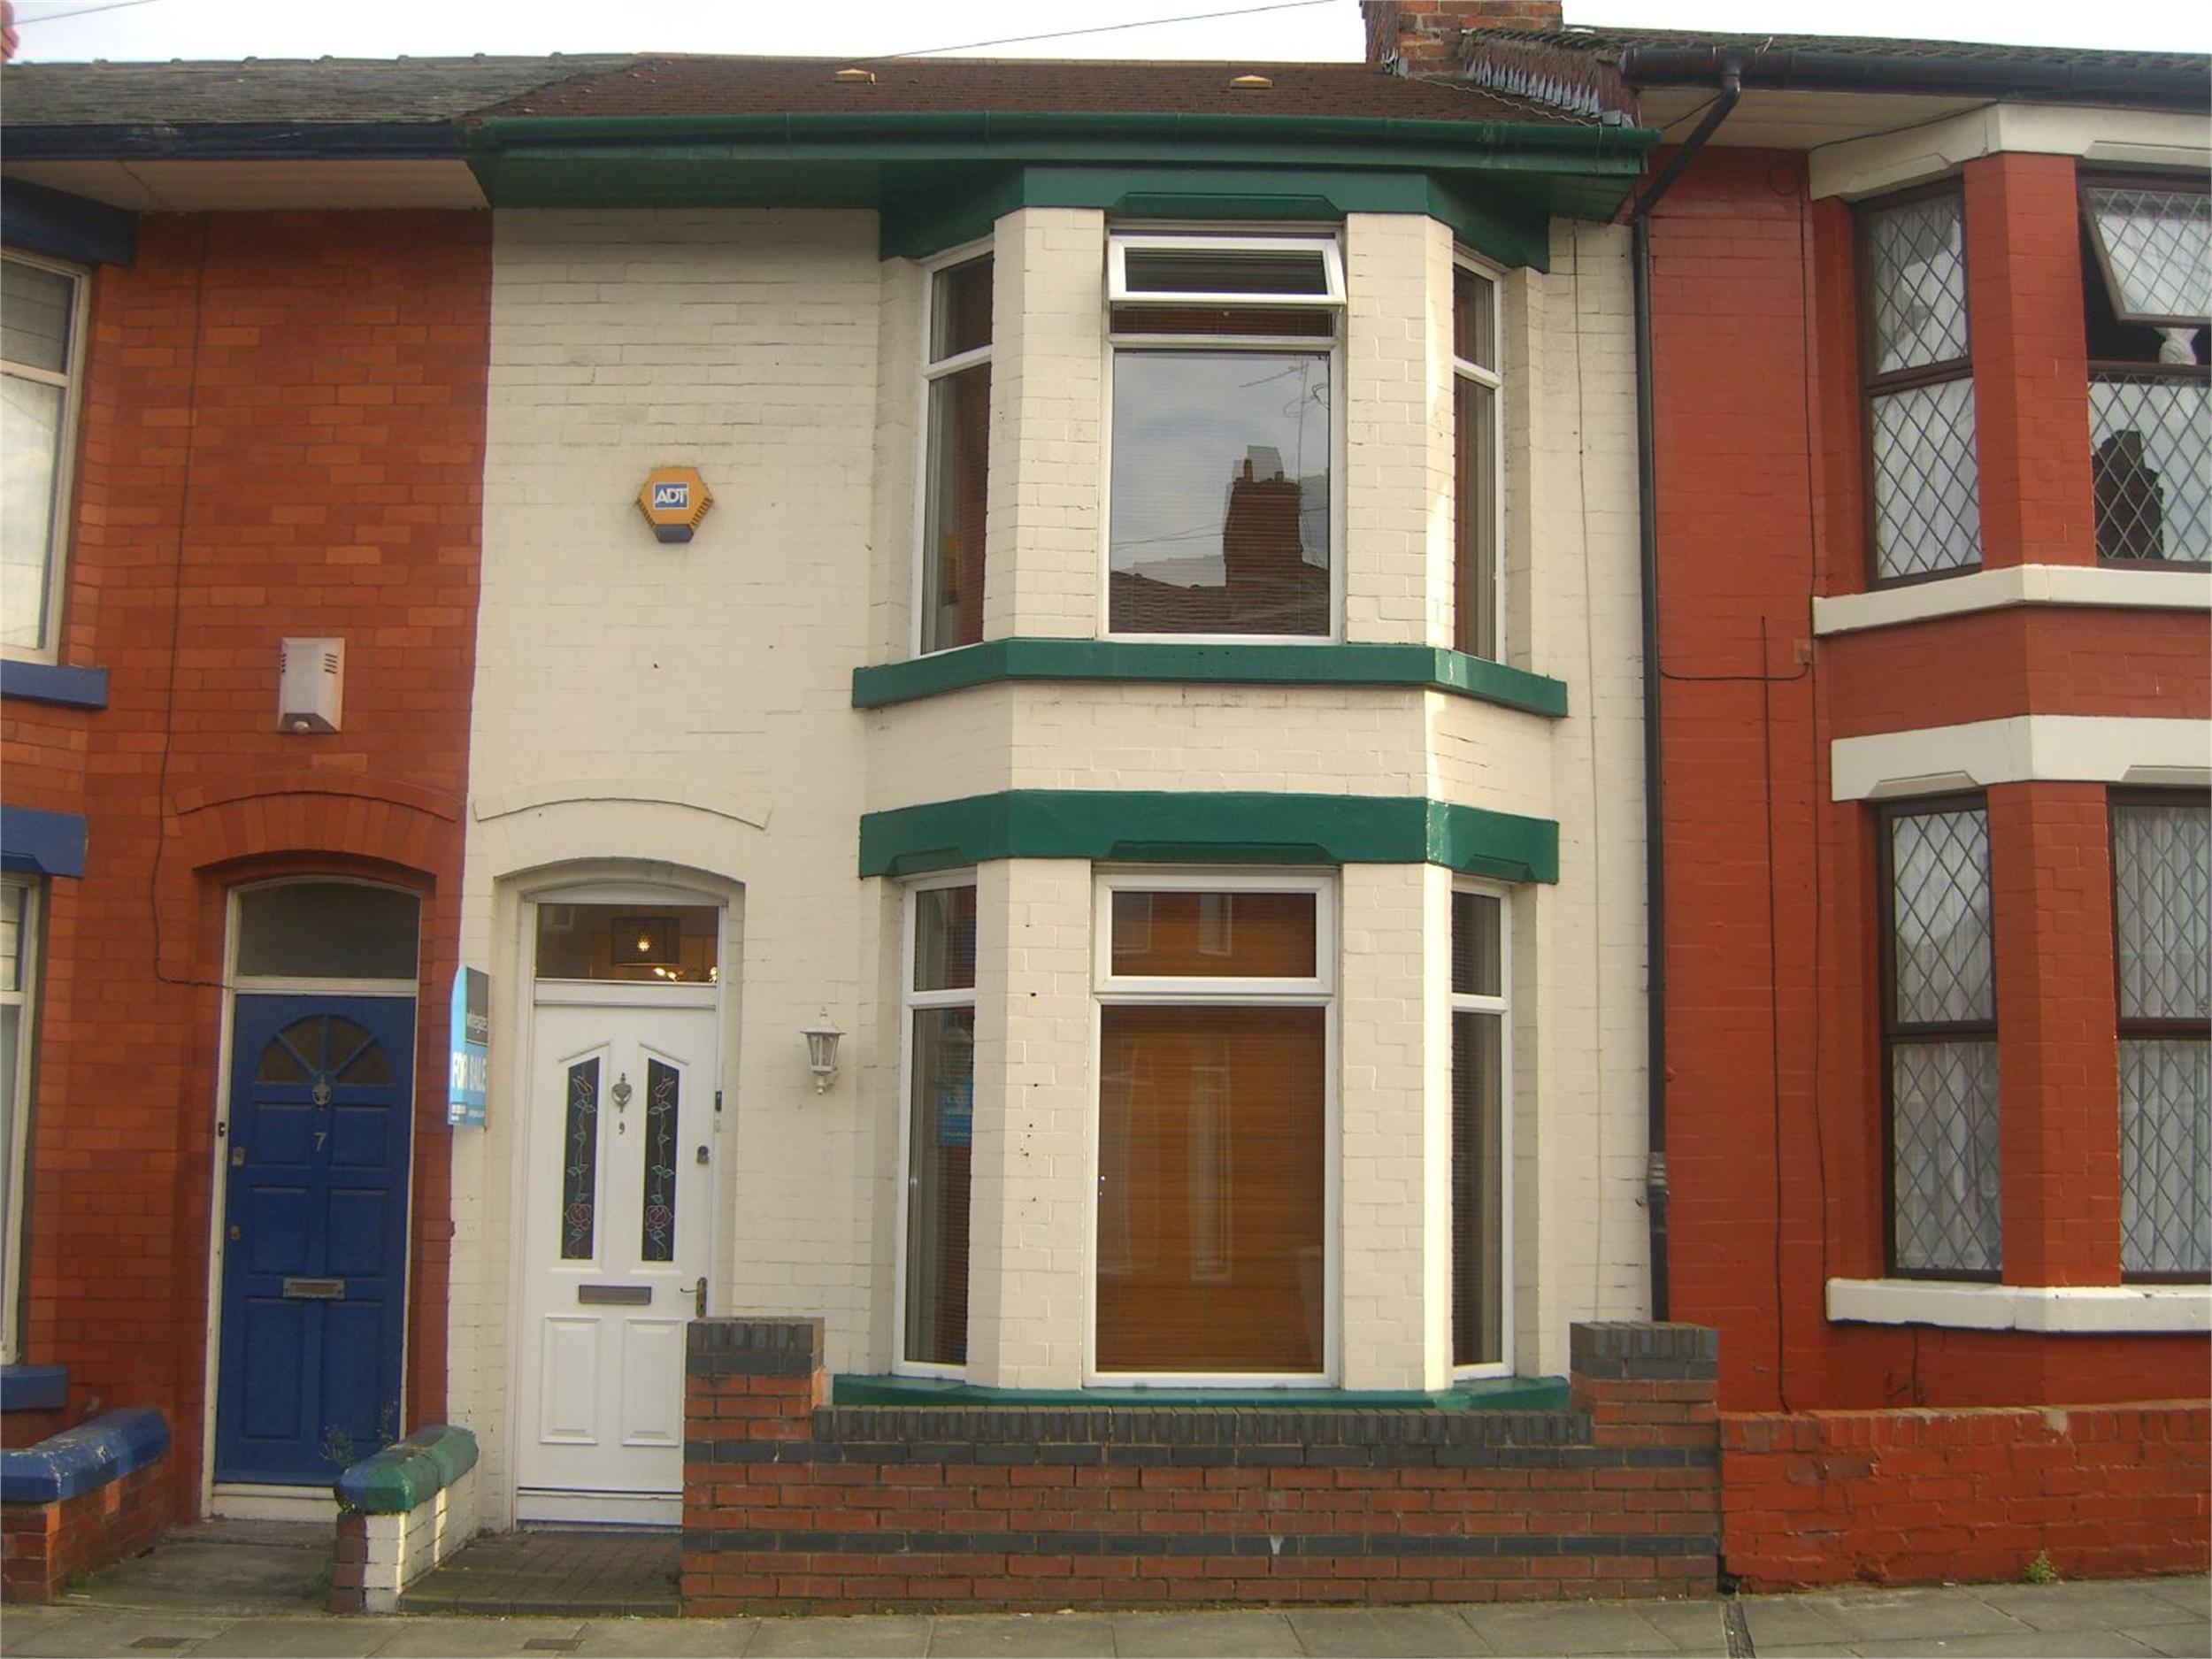 Whitegates Walton Vale 3 Bedroom Terraced House For Sale